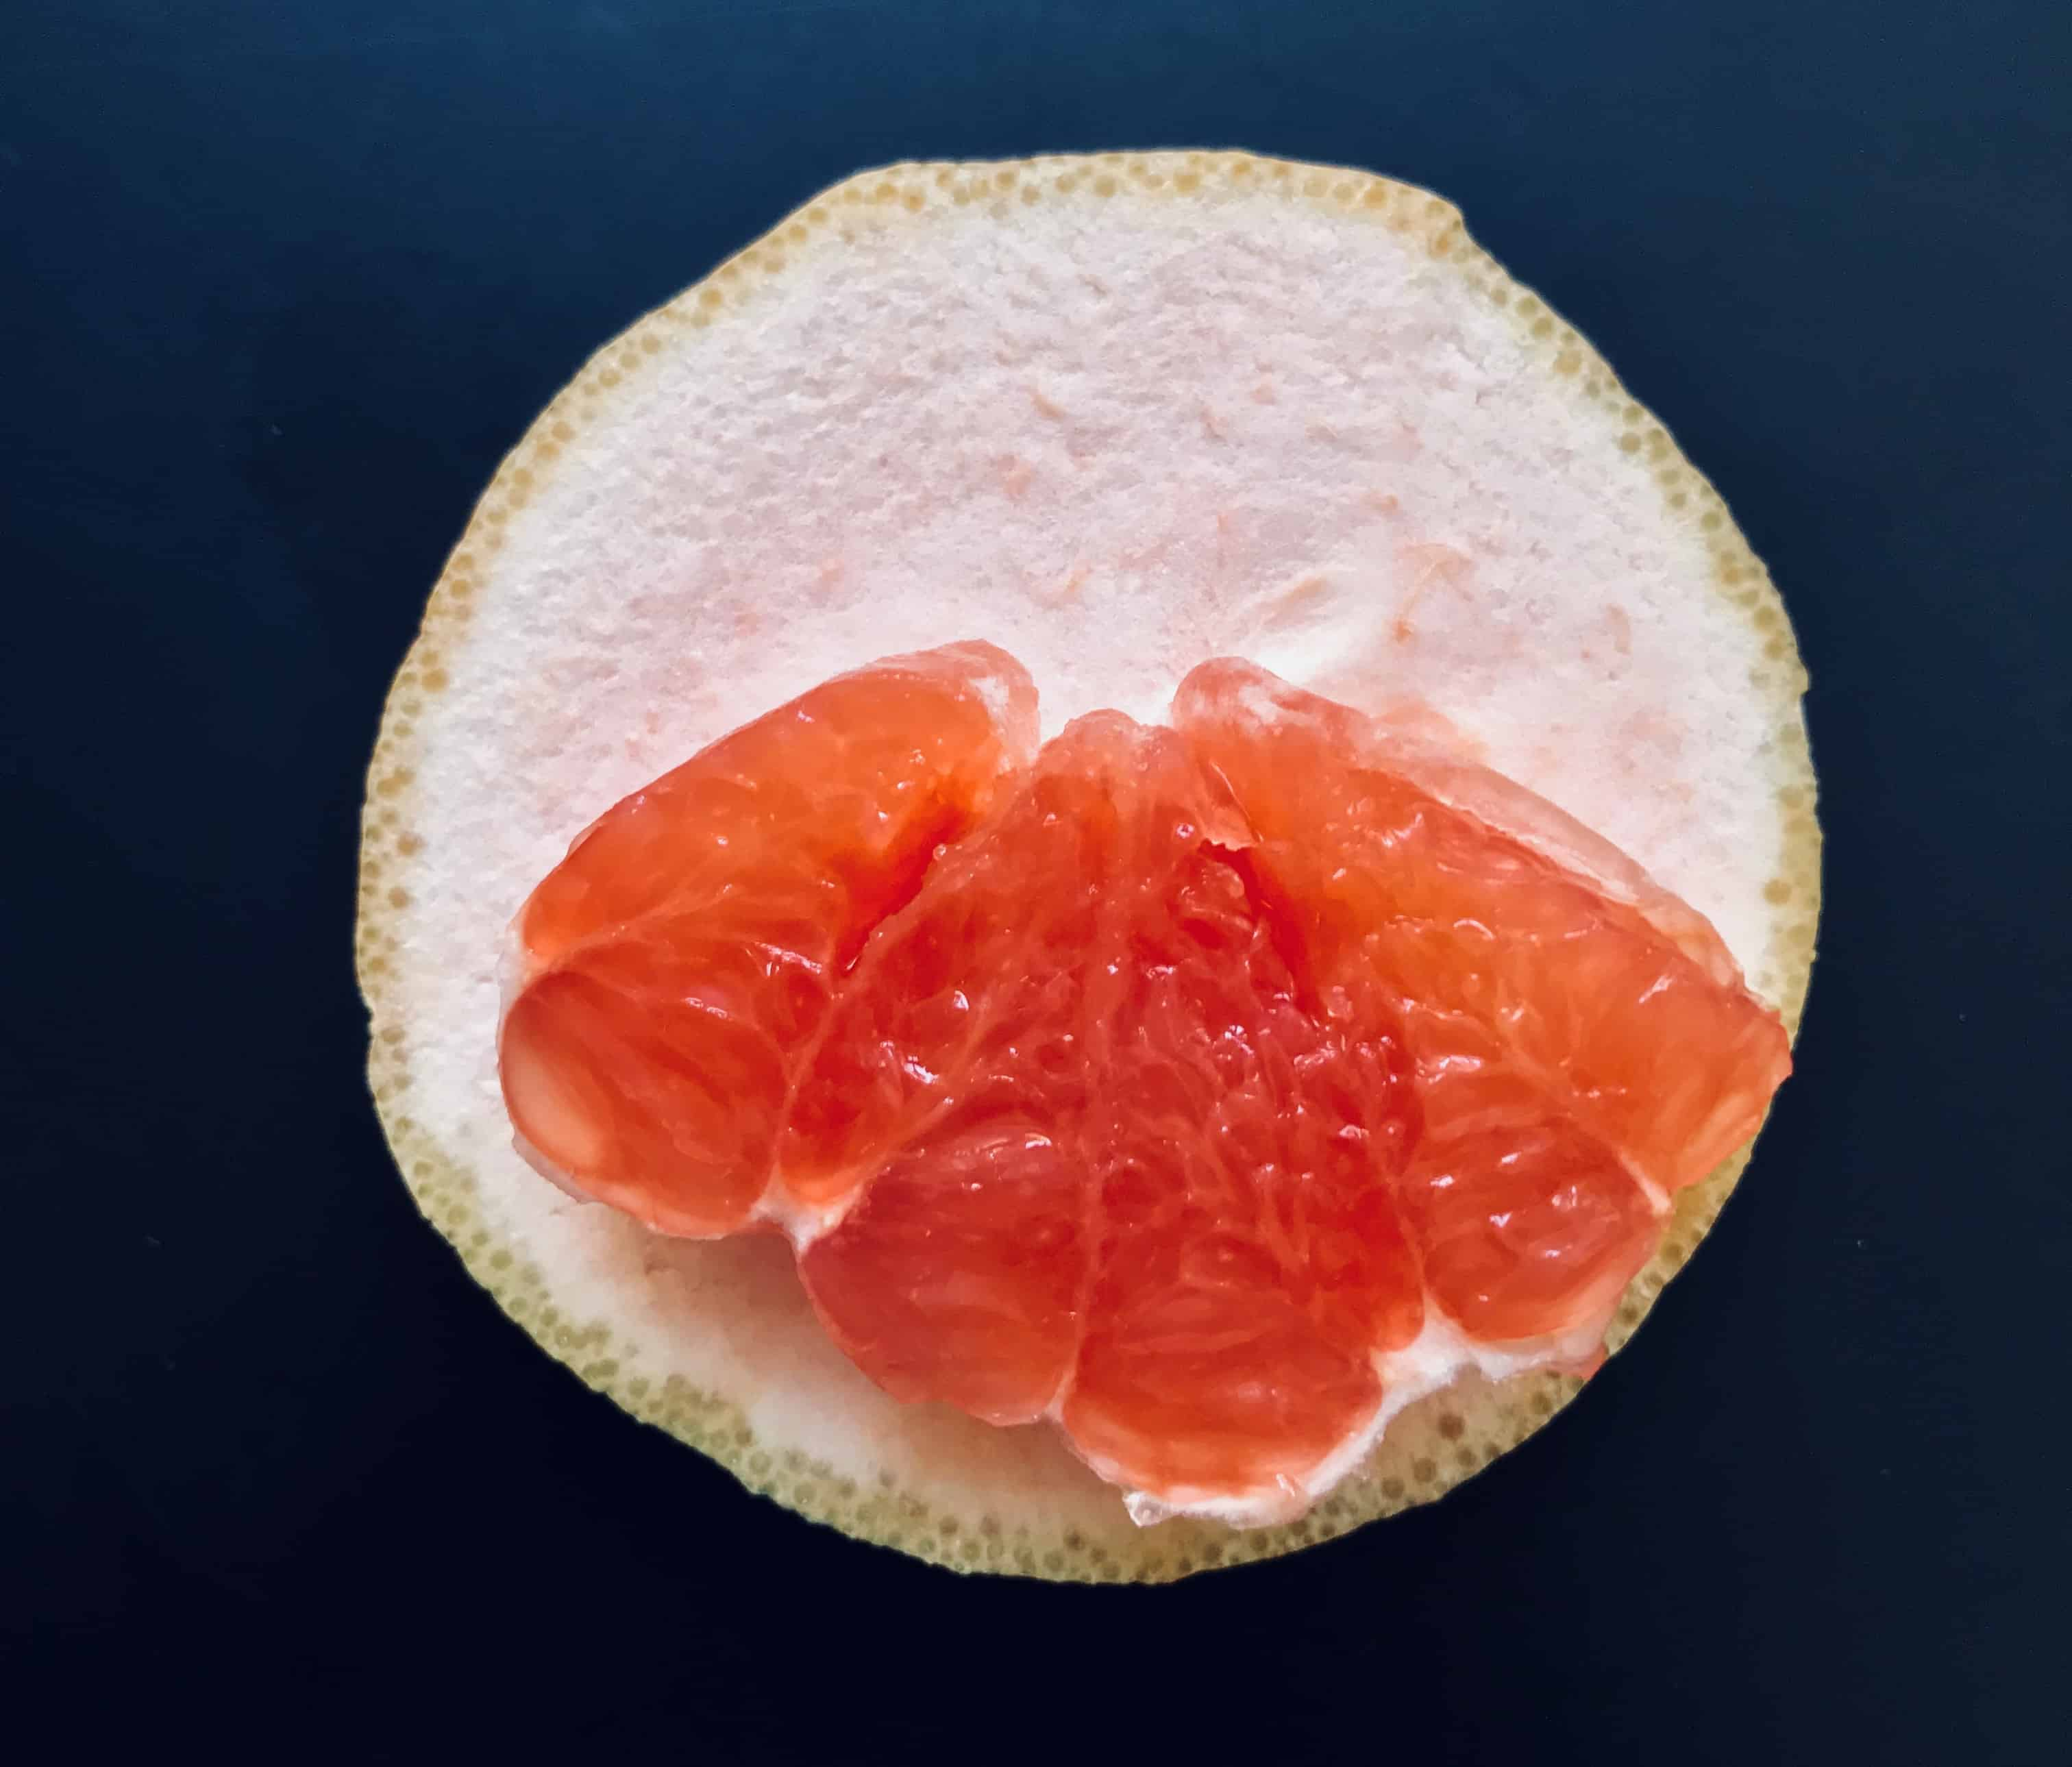 You can now share links to your photos, including photos of grapefruits.